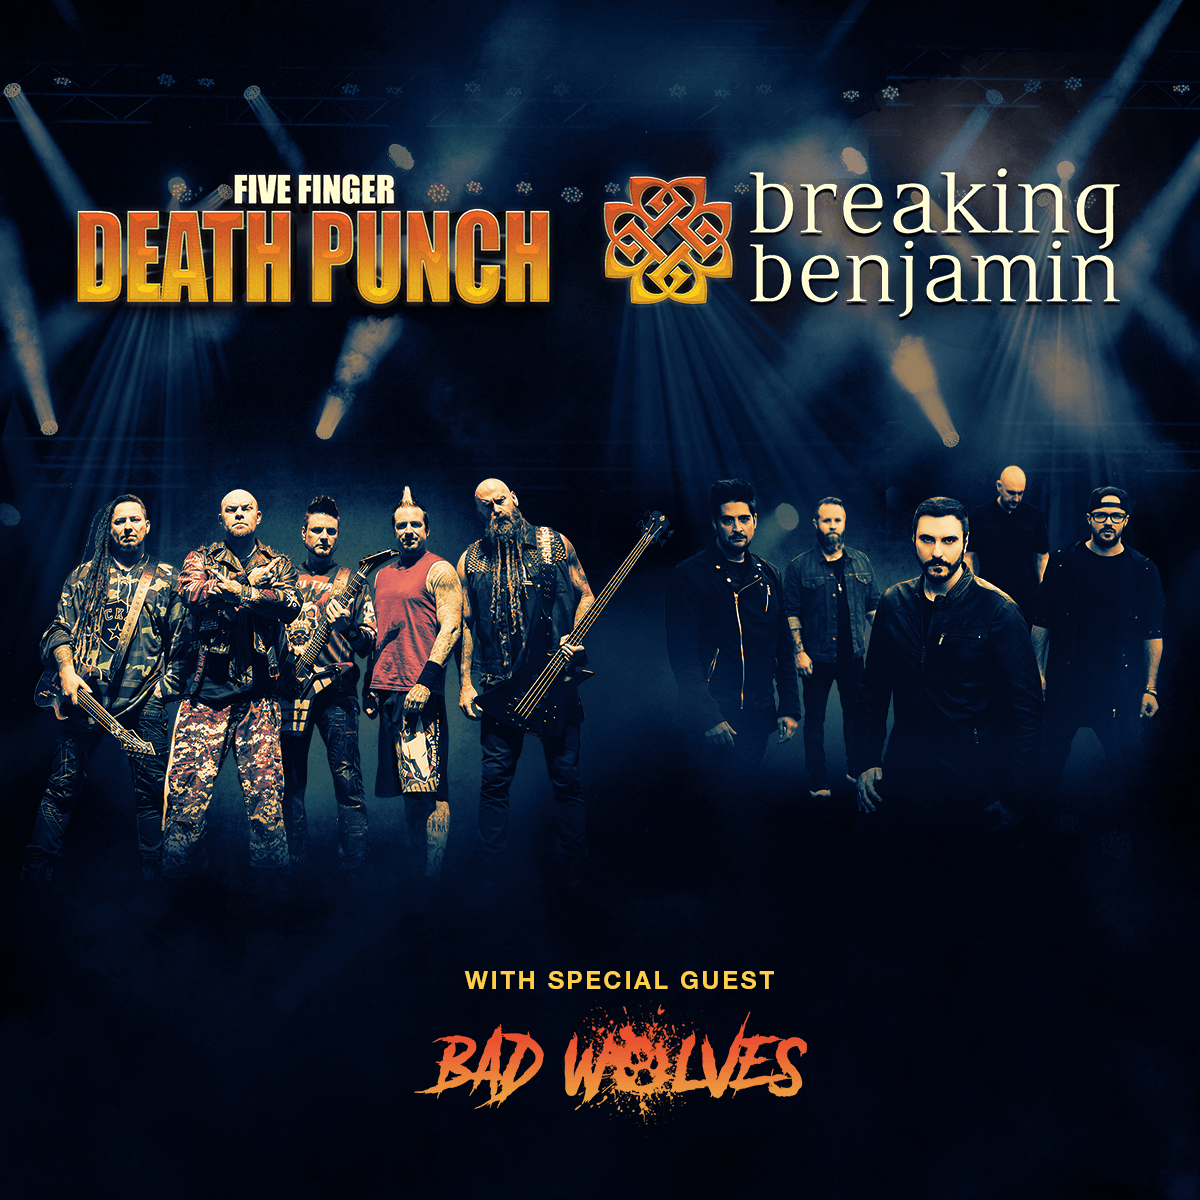 Breaking Benjamin And Five Finger Death Punch With Bad Wolves